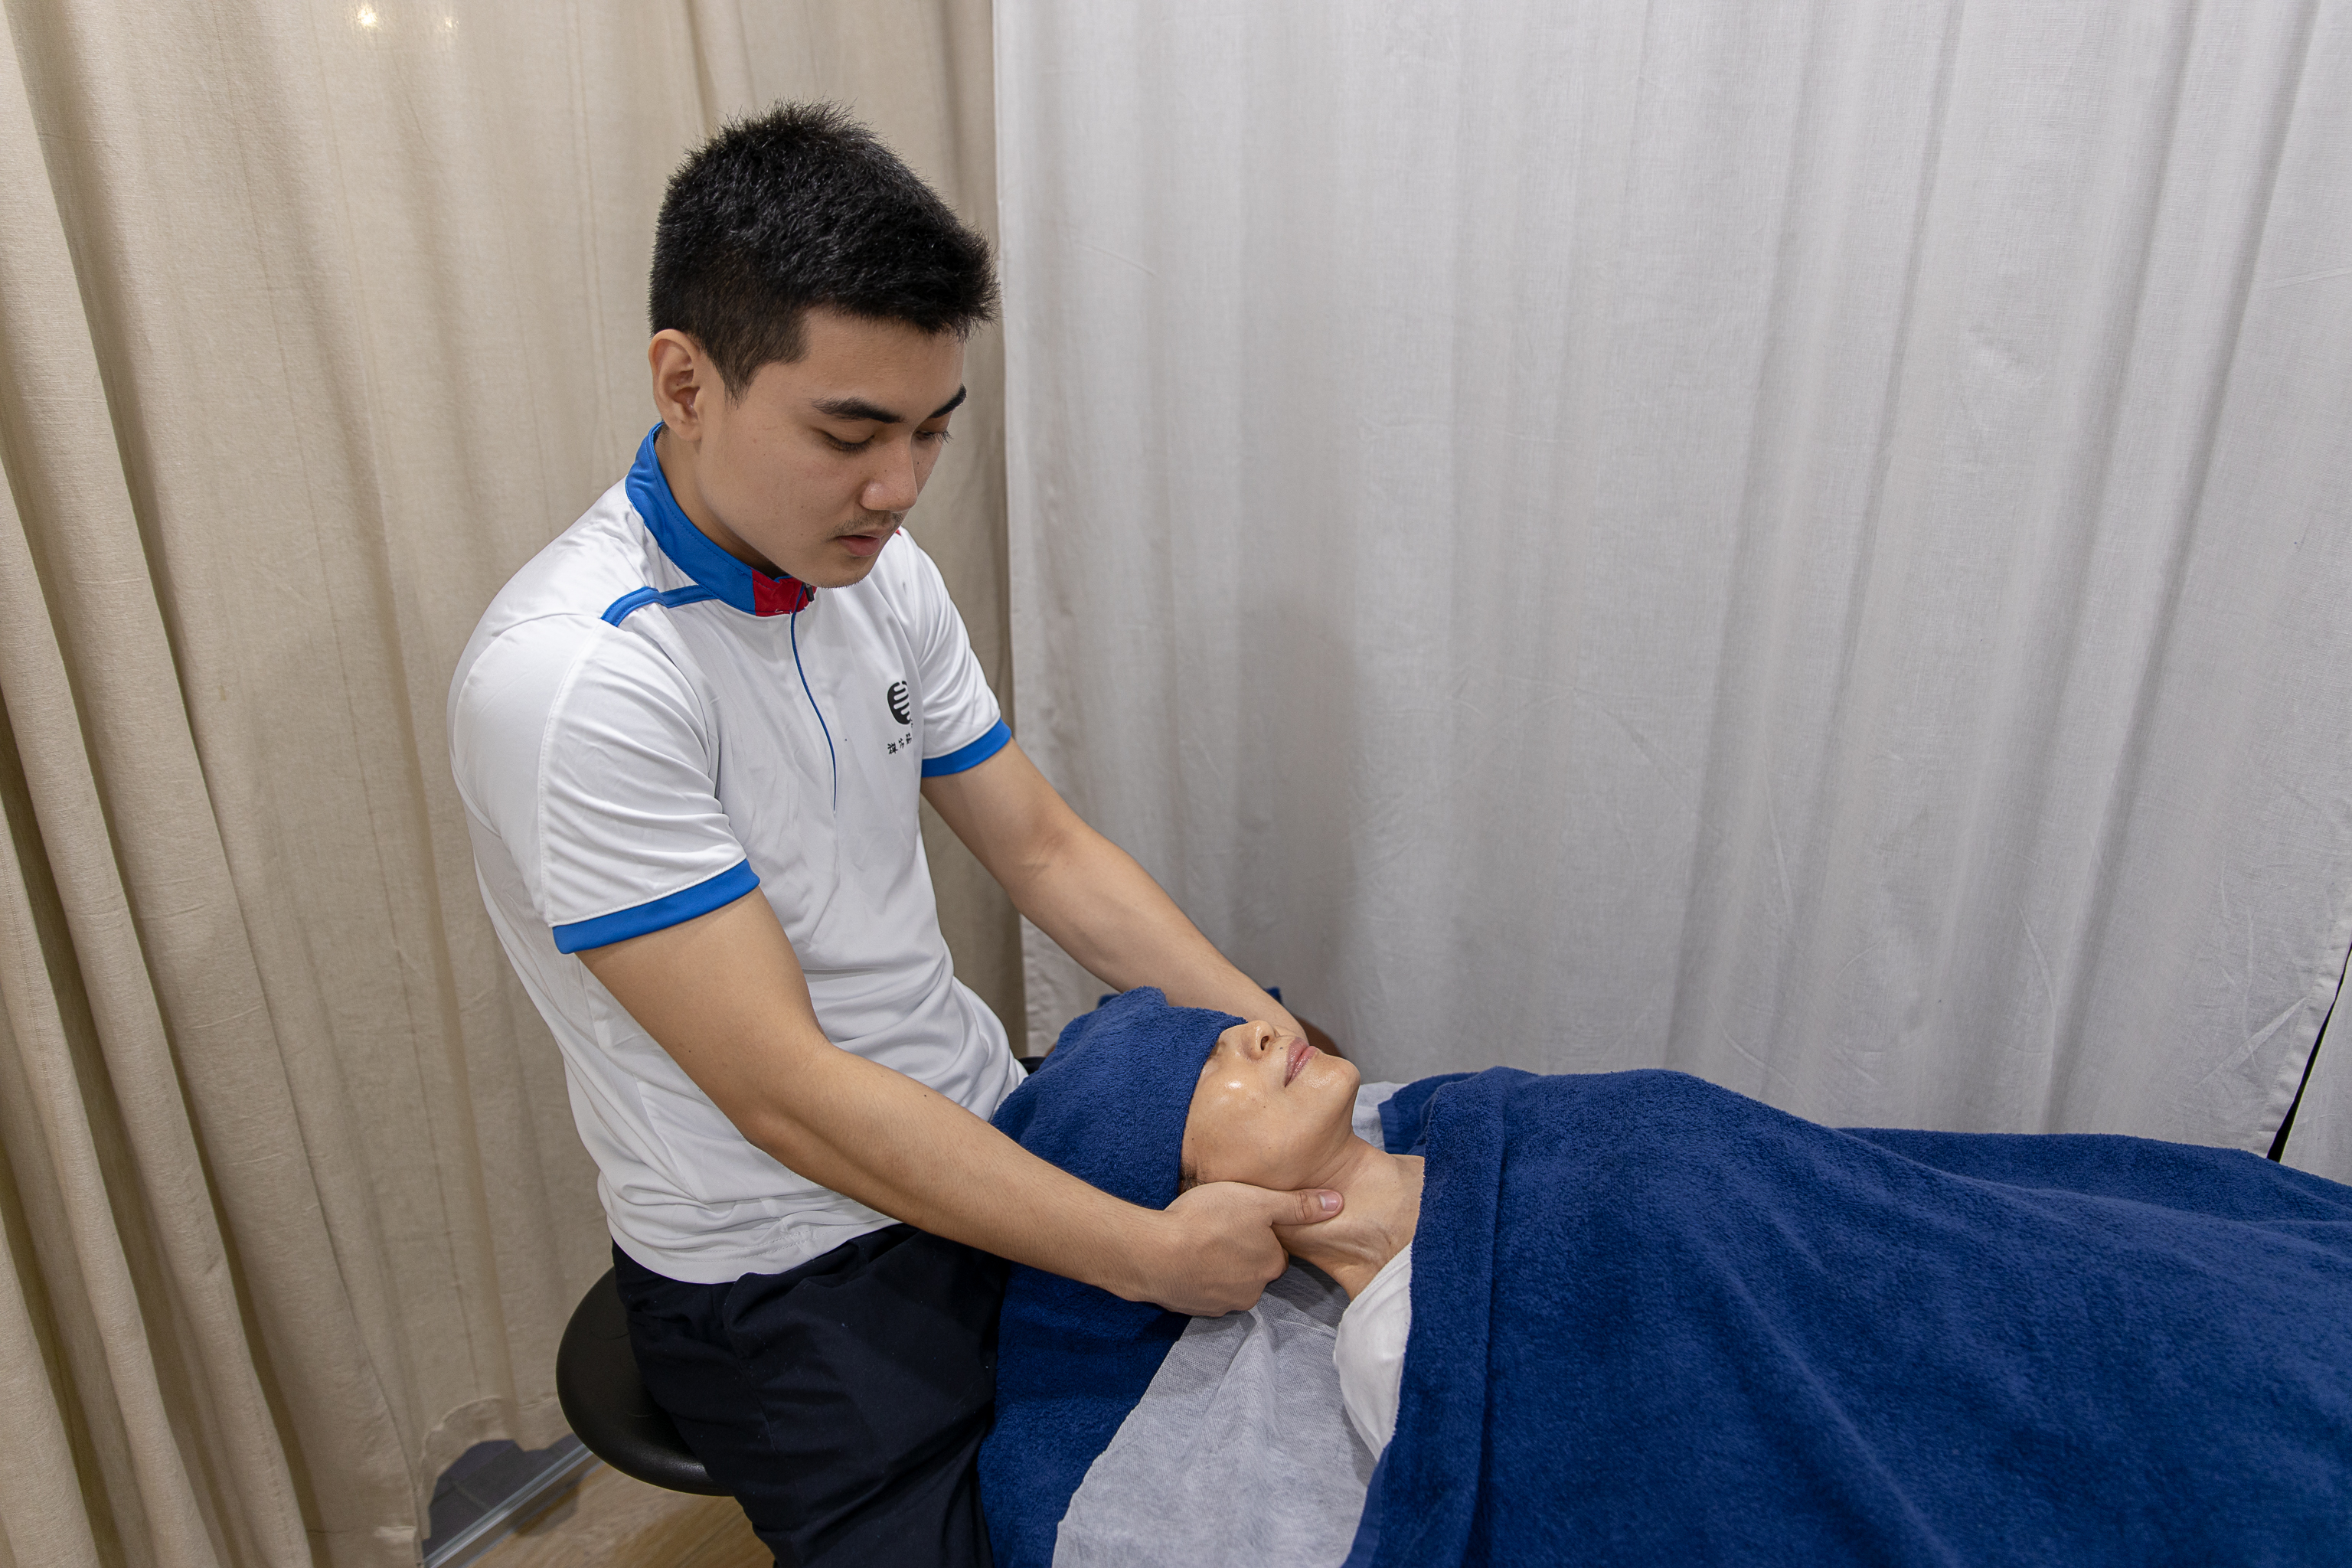 Sports Injury Treatment Singapore